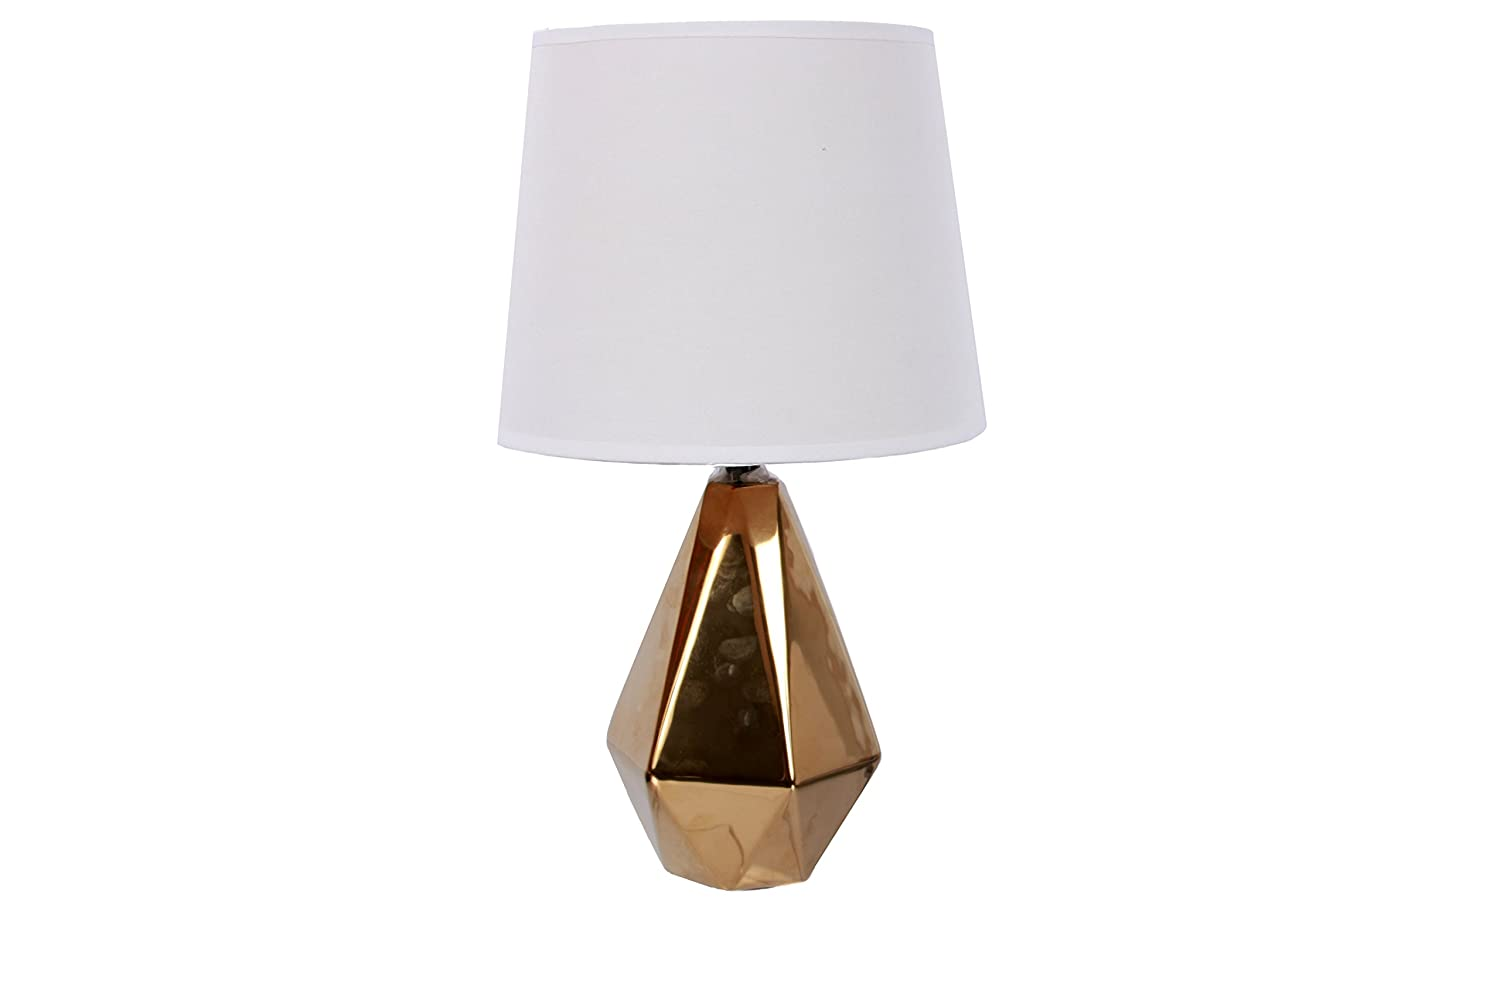 DEI Gold Faceted Diamond Base lamp Tall 70239